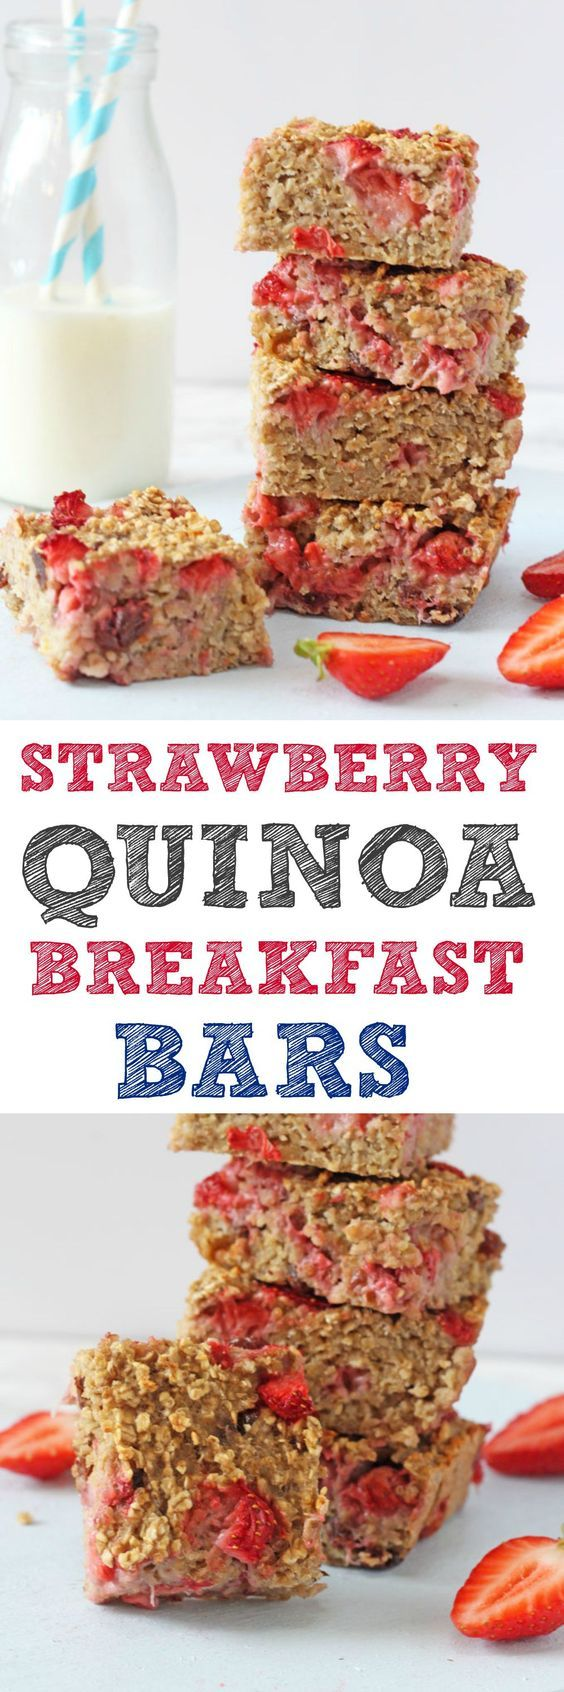 A delicious and filling breakfast bar recipe, packed full of healthy ...